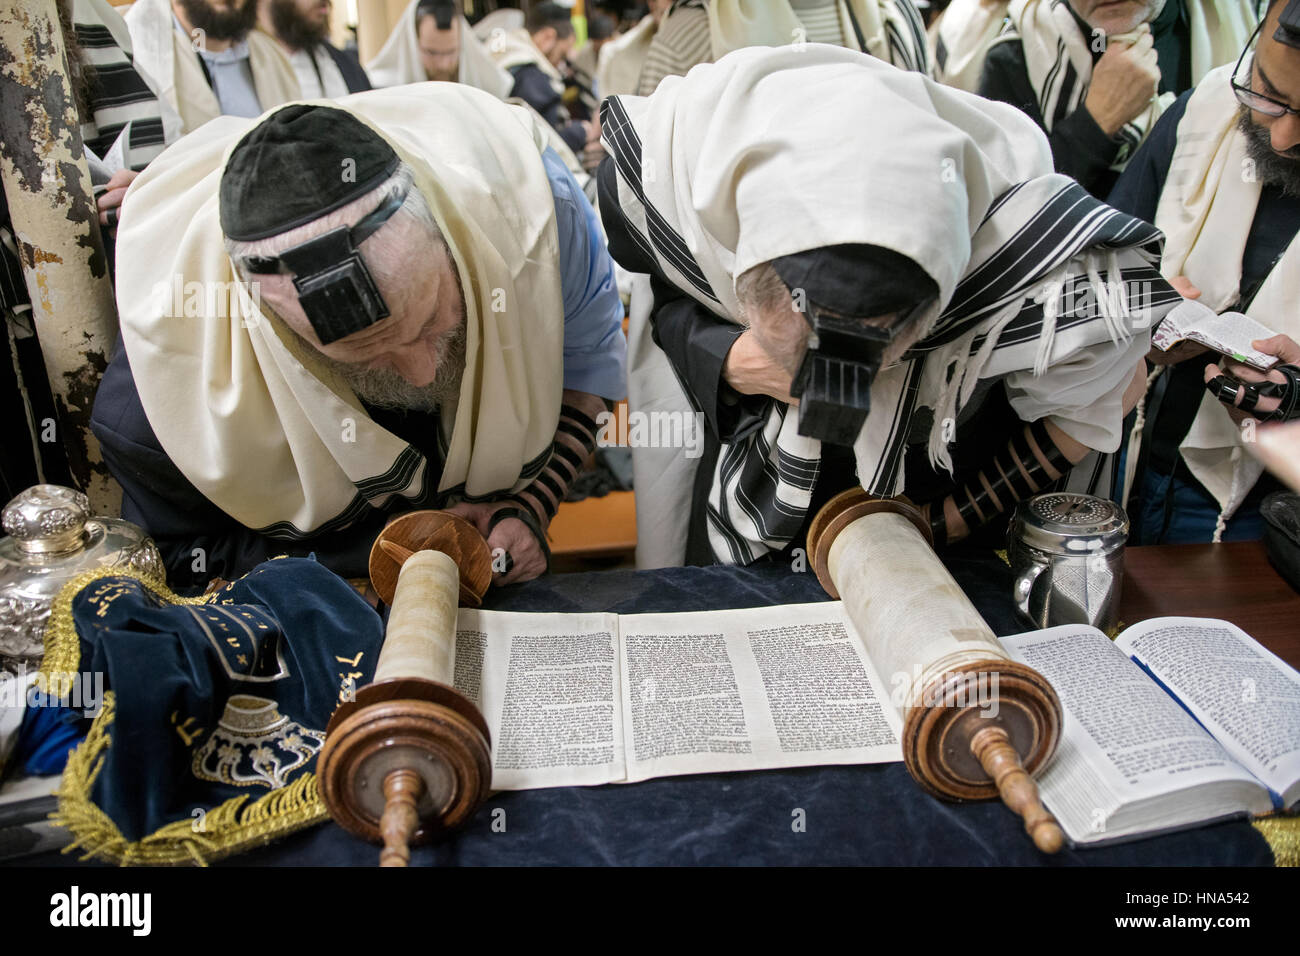 Two orthodox religious Jewish men at a Torah reading at morning services in a synagogue in Crown Heo9ghts, Brooklyn, - Stock Image